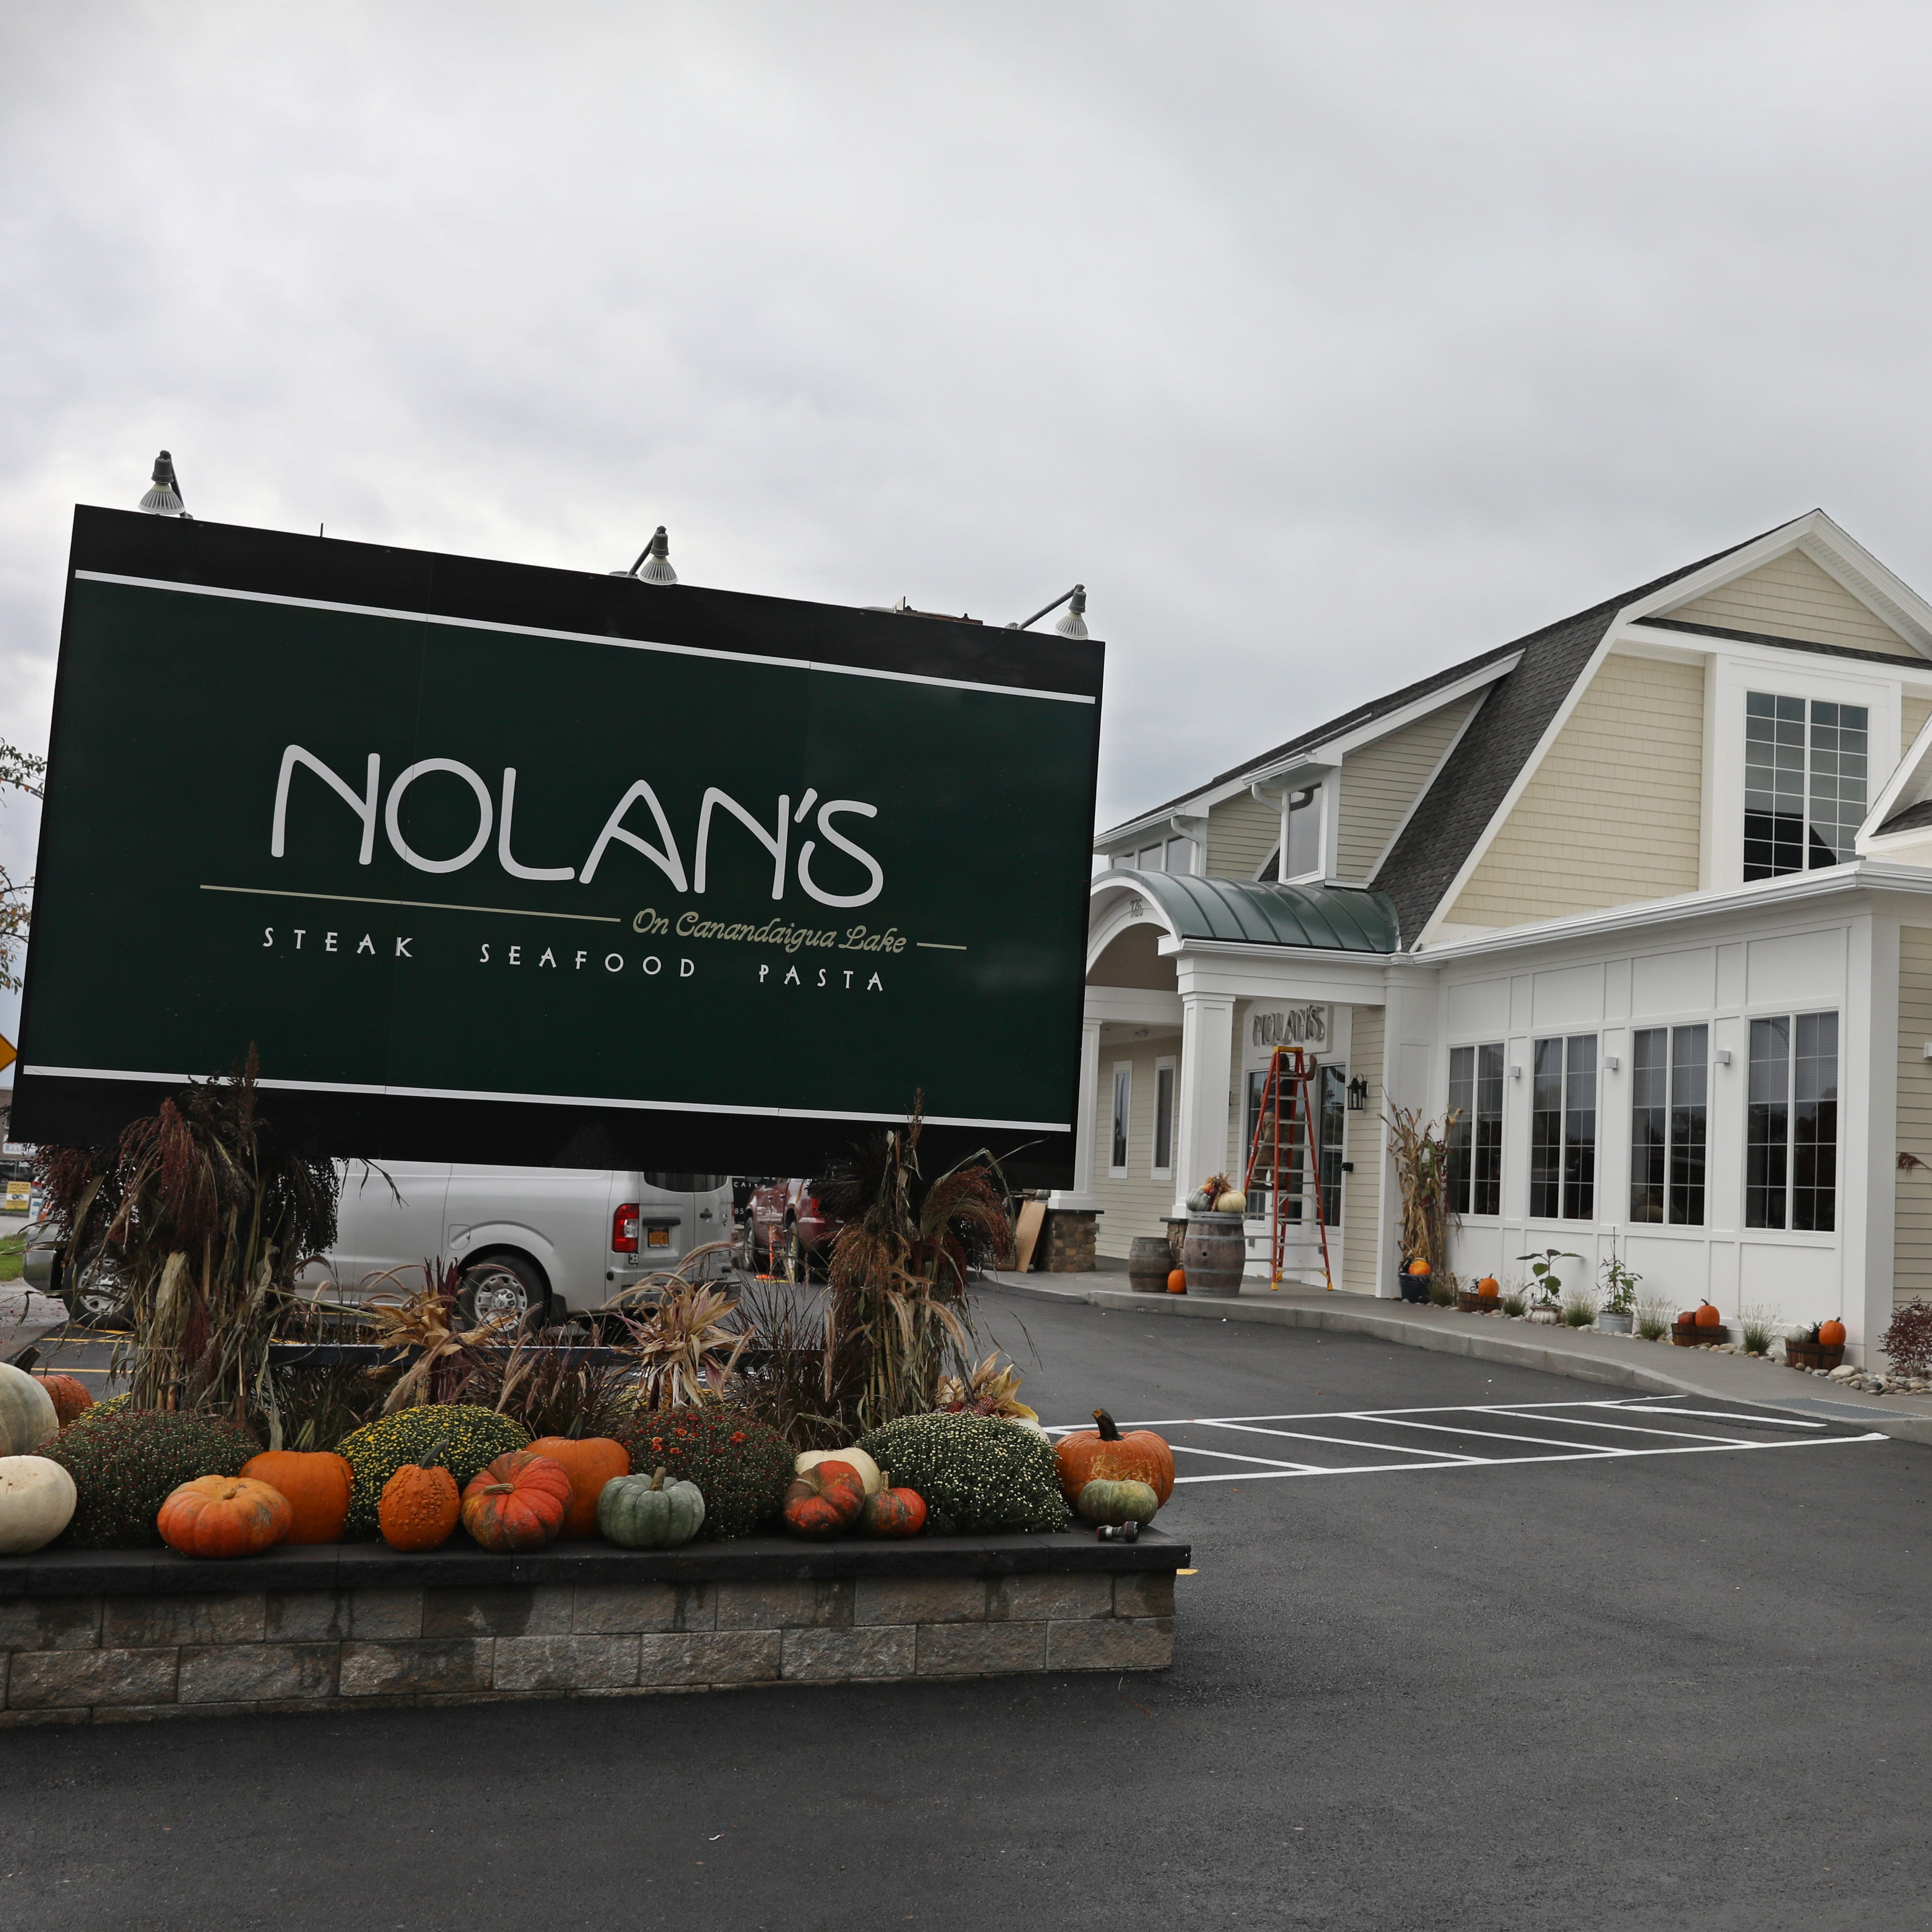 Nolan's restaurant reopens Monday in Canandaigua after $2.4 million rebuild